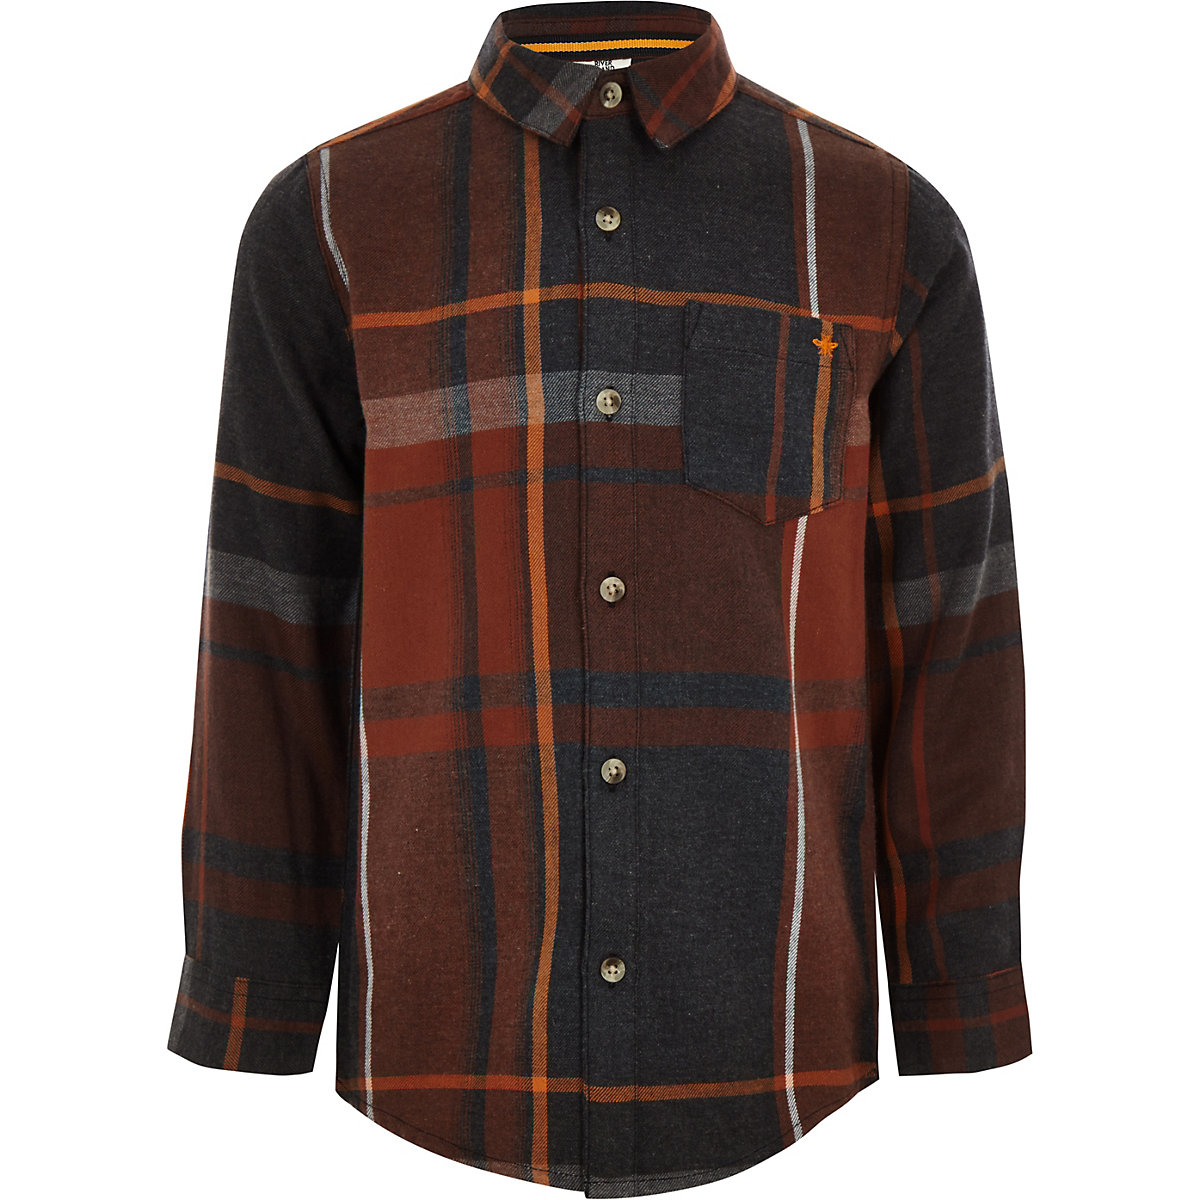 Boys red check long sleeve button-up shirt